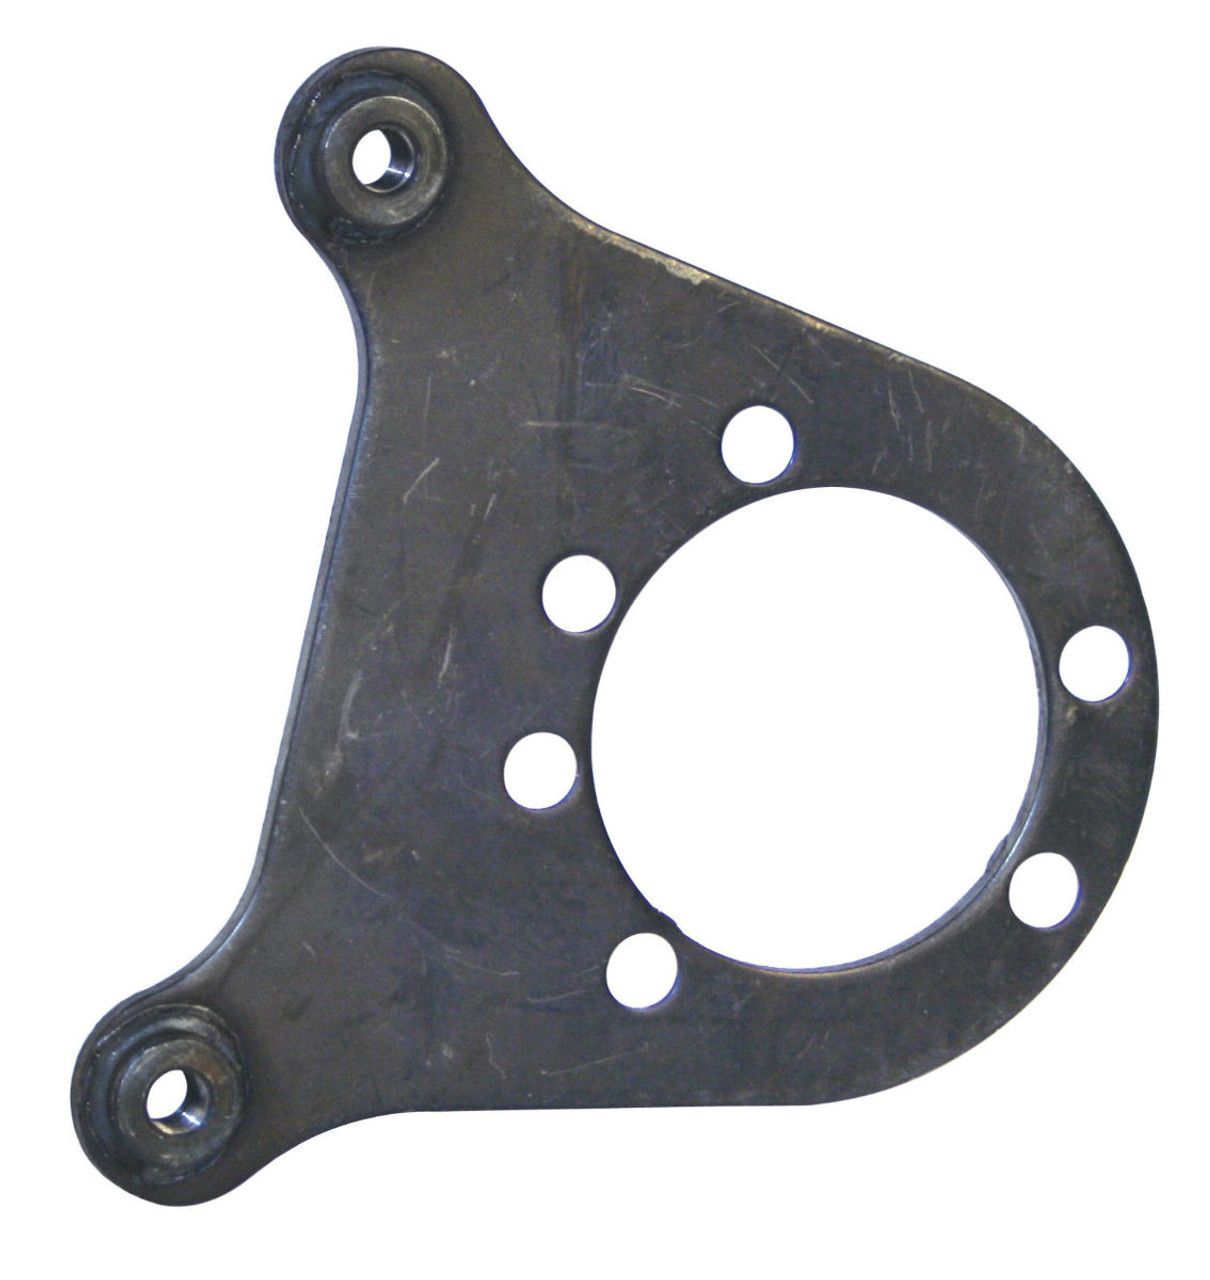 4-Piston Brake Caliper Bracket ,Ball Joint, Fits VW Buggy Baja Rock Crawler, EMPI 17-2677